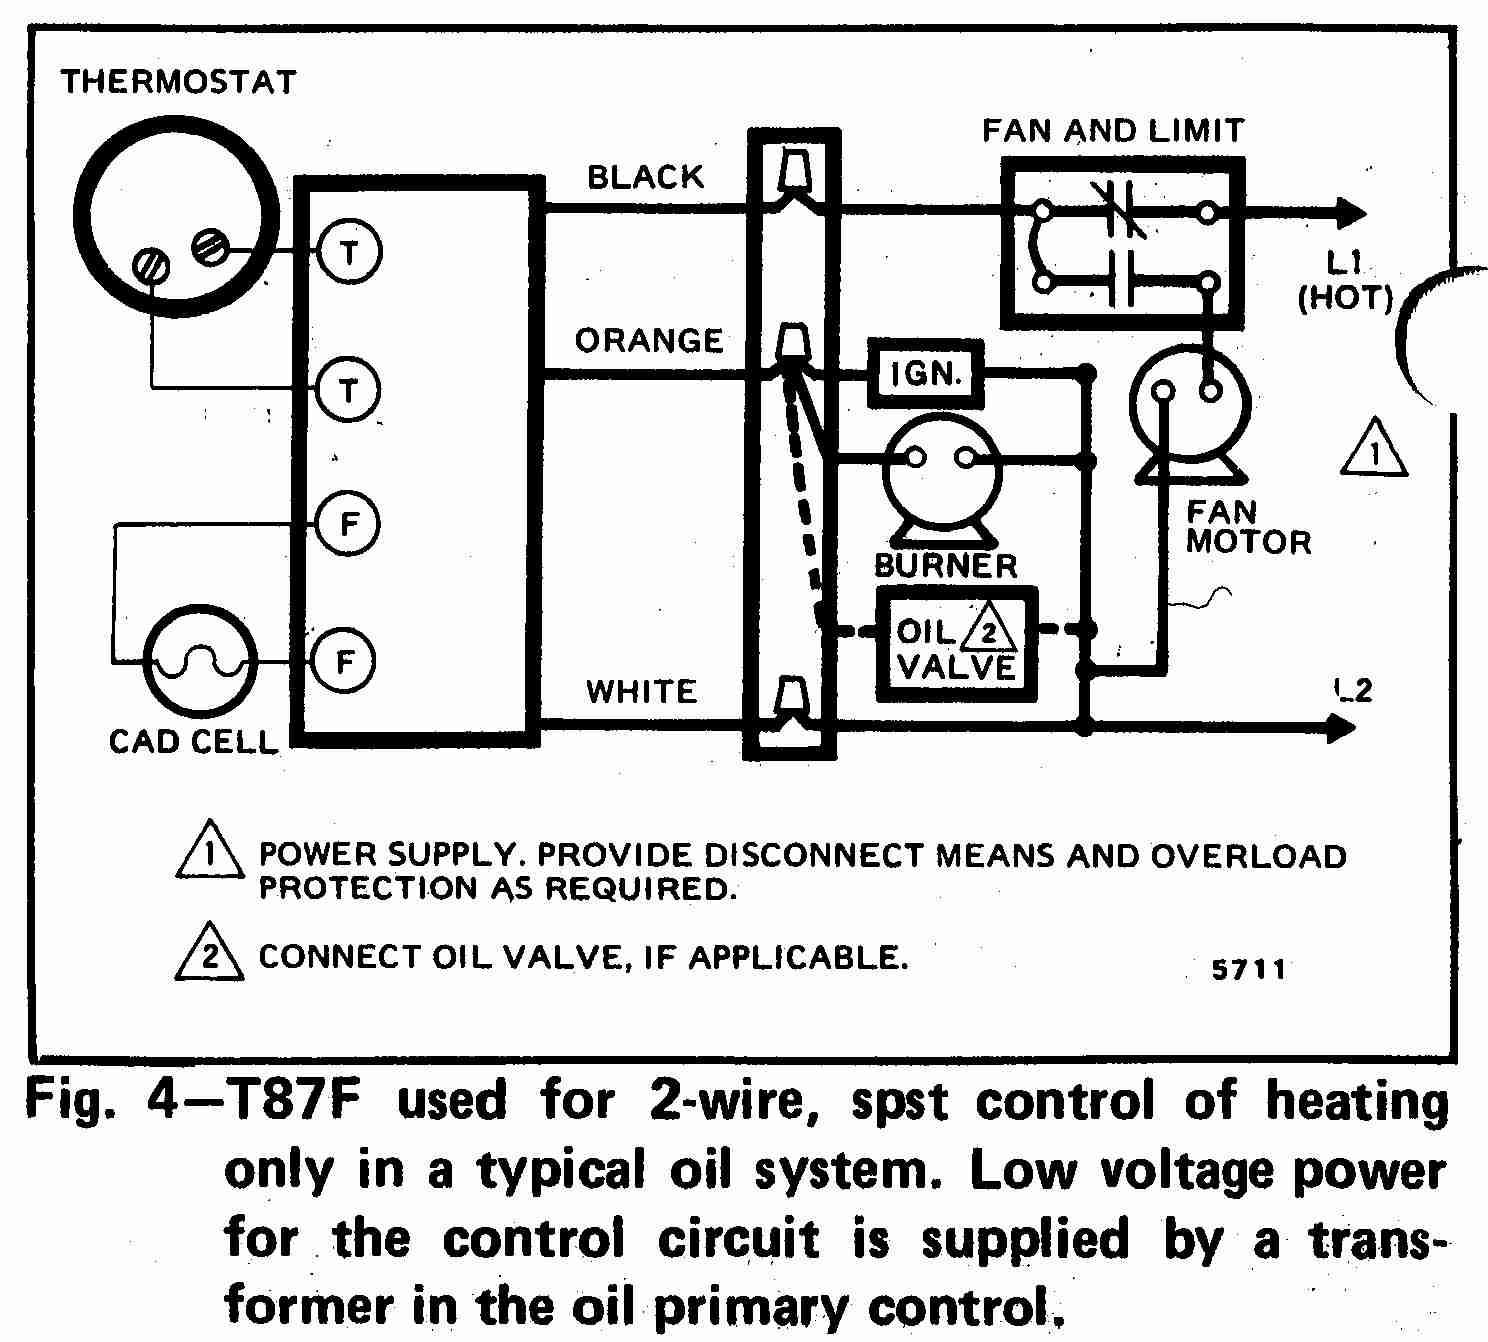 Gas Heat Furnace Wiring Diagram Schematic | Manual E-Books - Gas Furnace Wiring Diagram